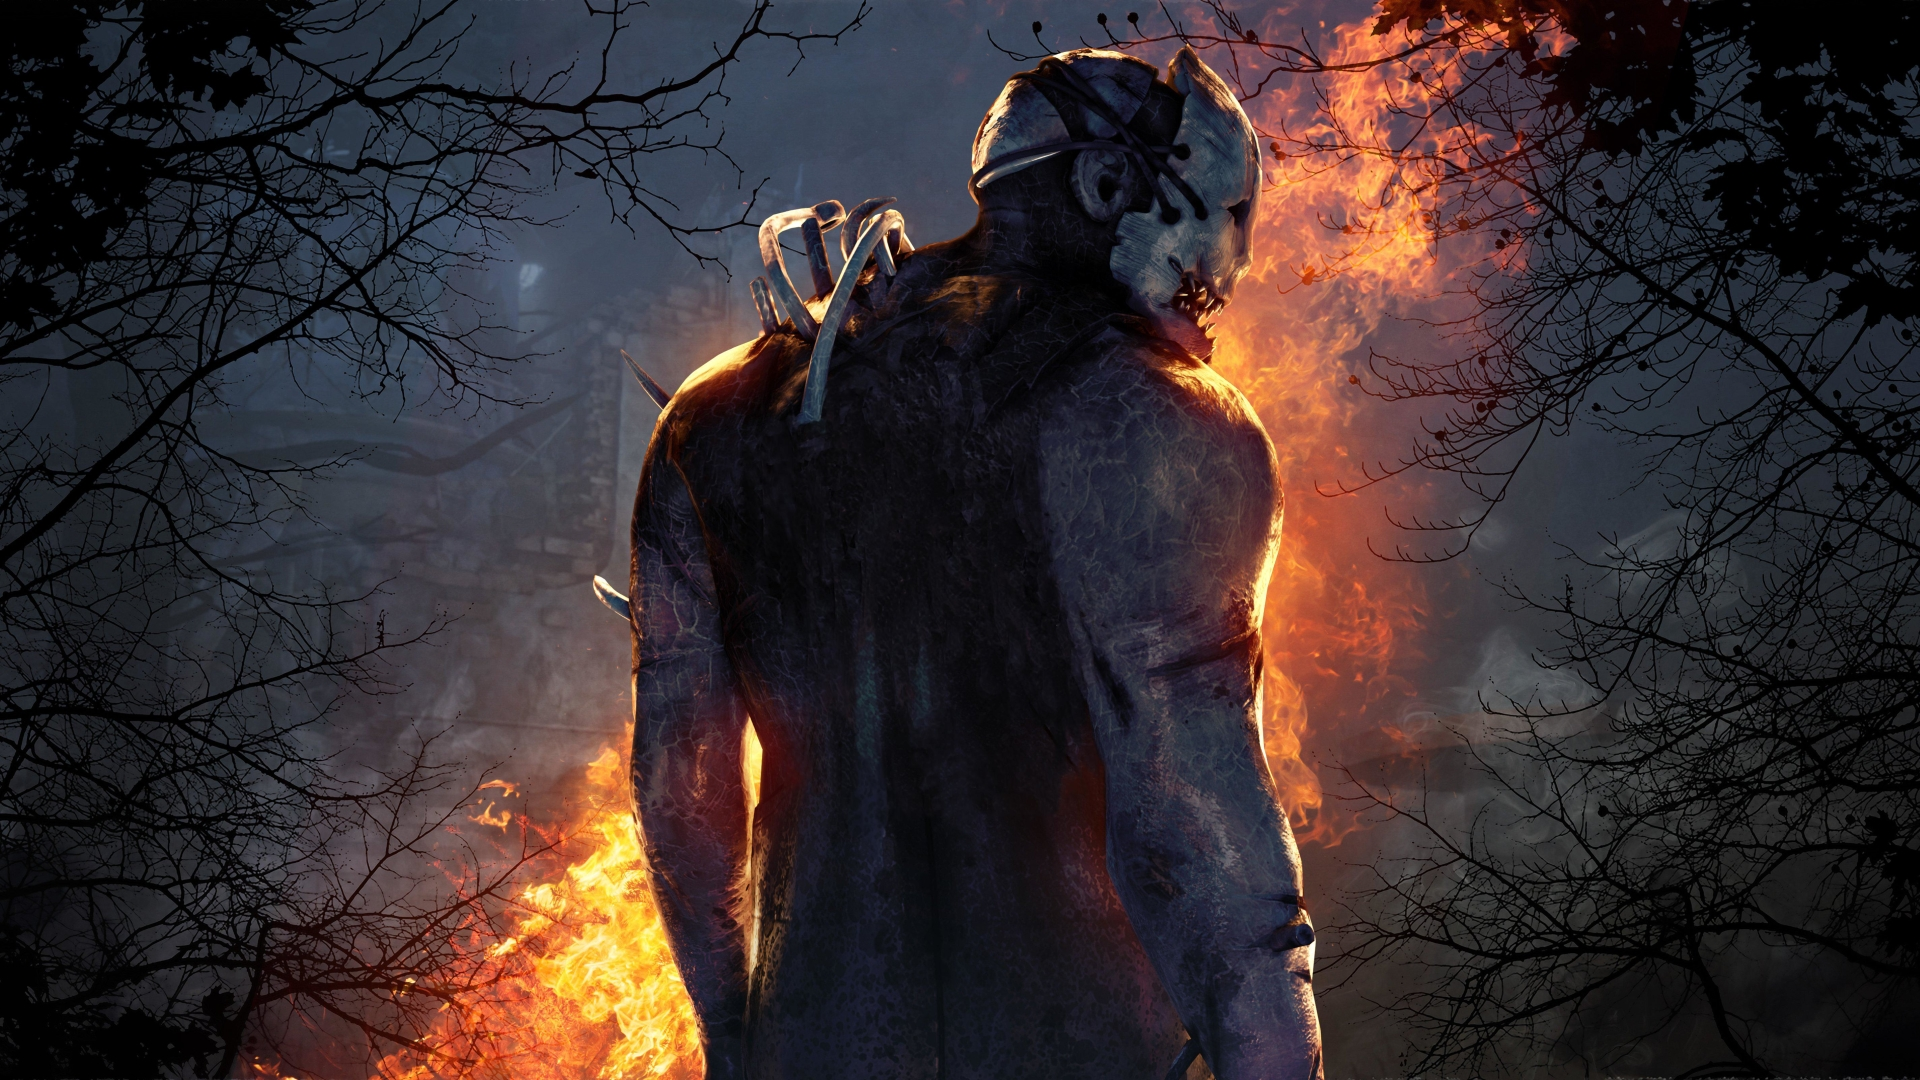 Dead by Daylight - PS4 / PS5 - Wallpapers - 1920x1080